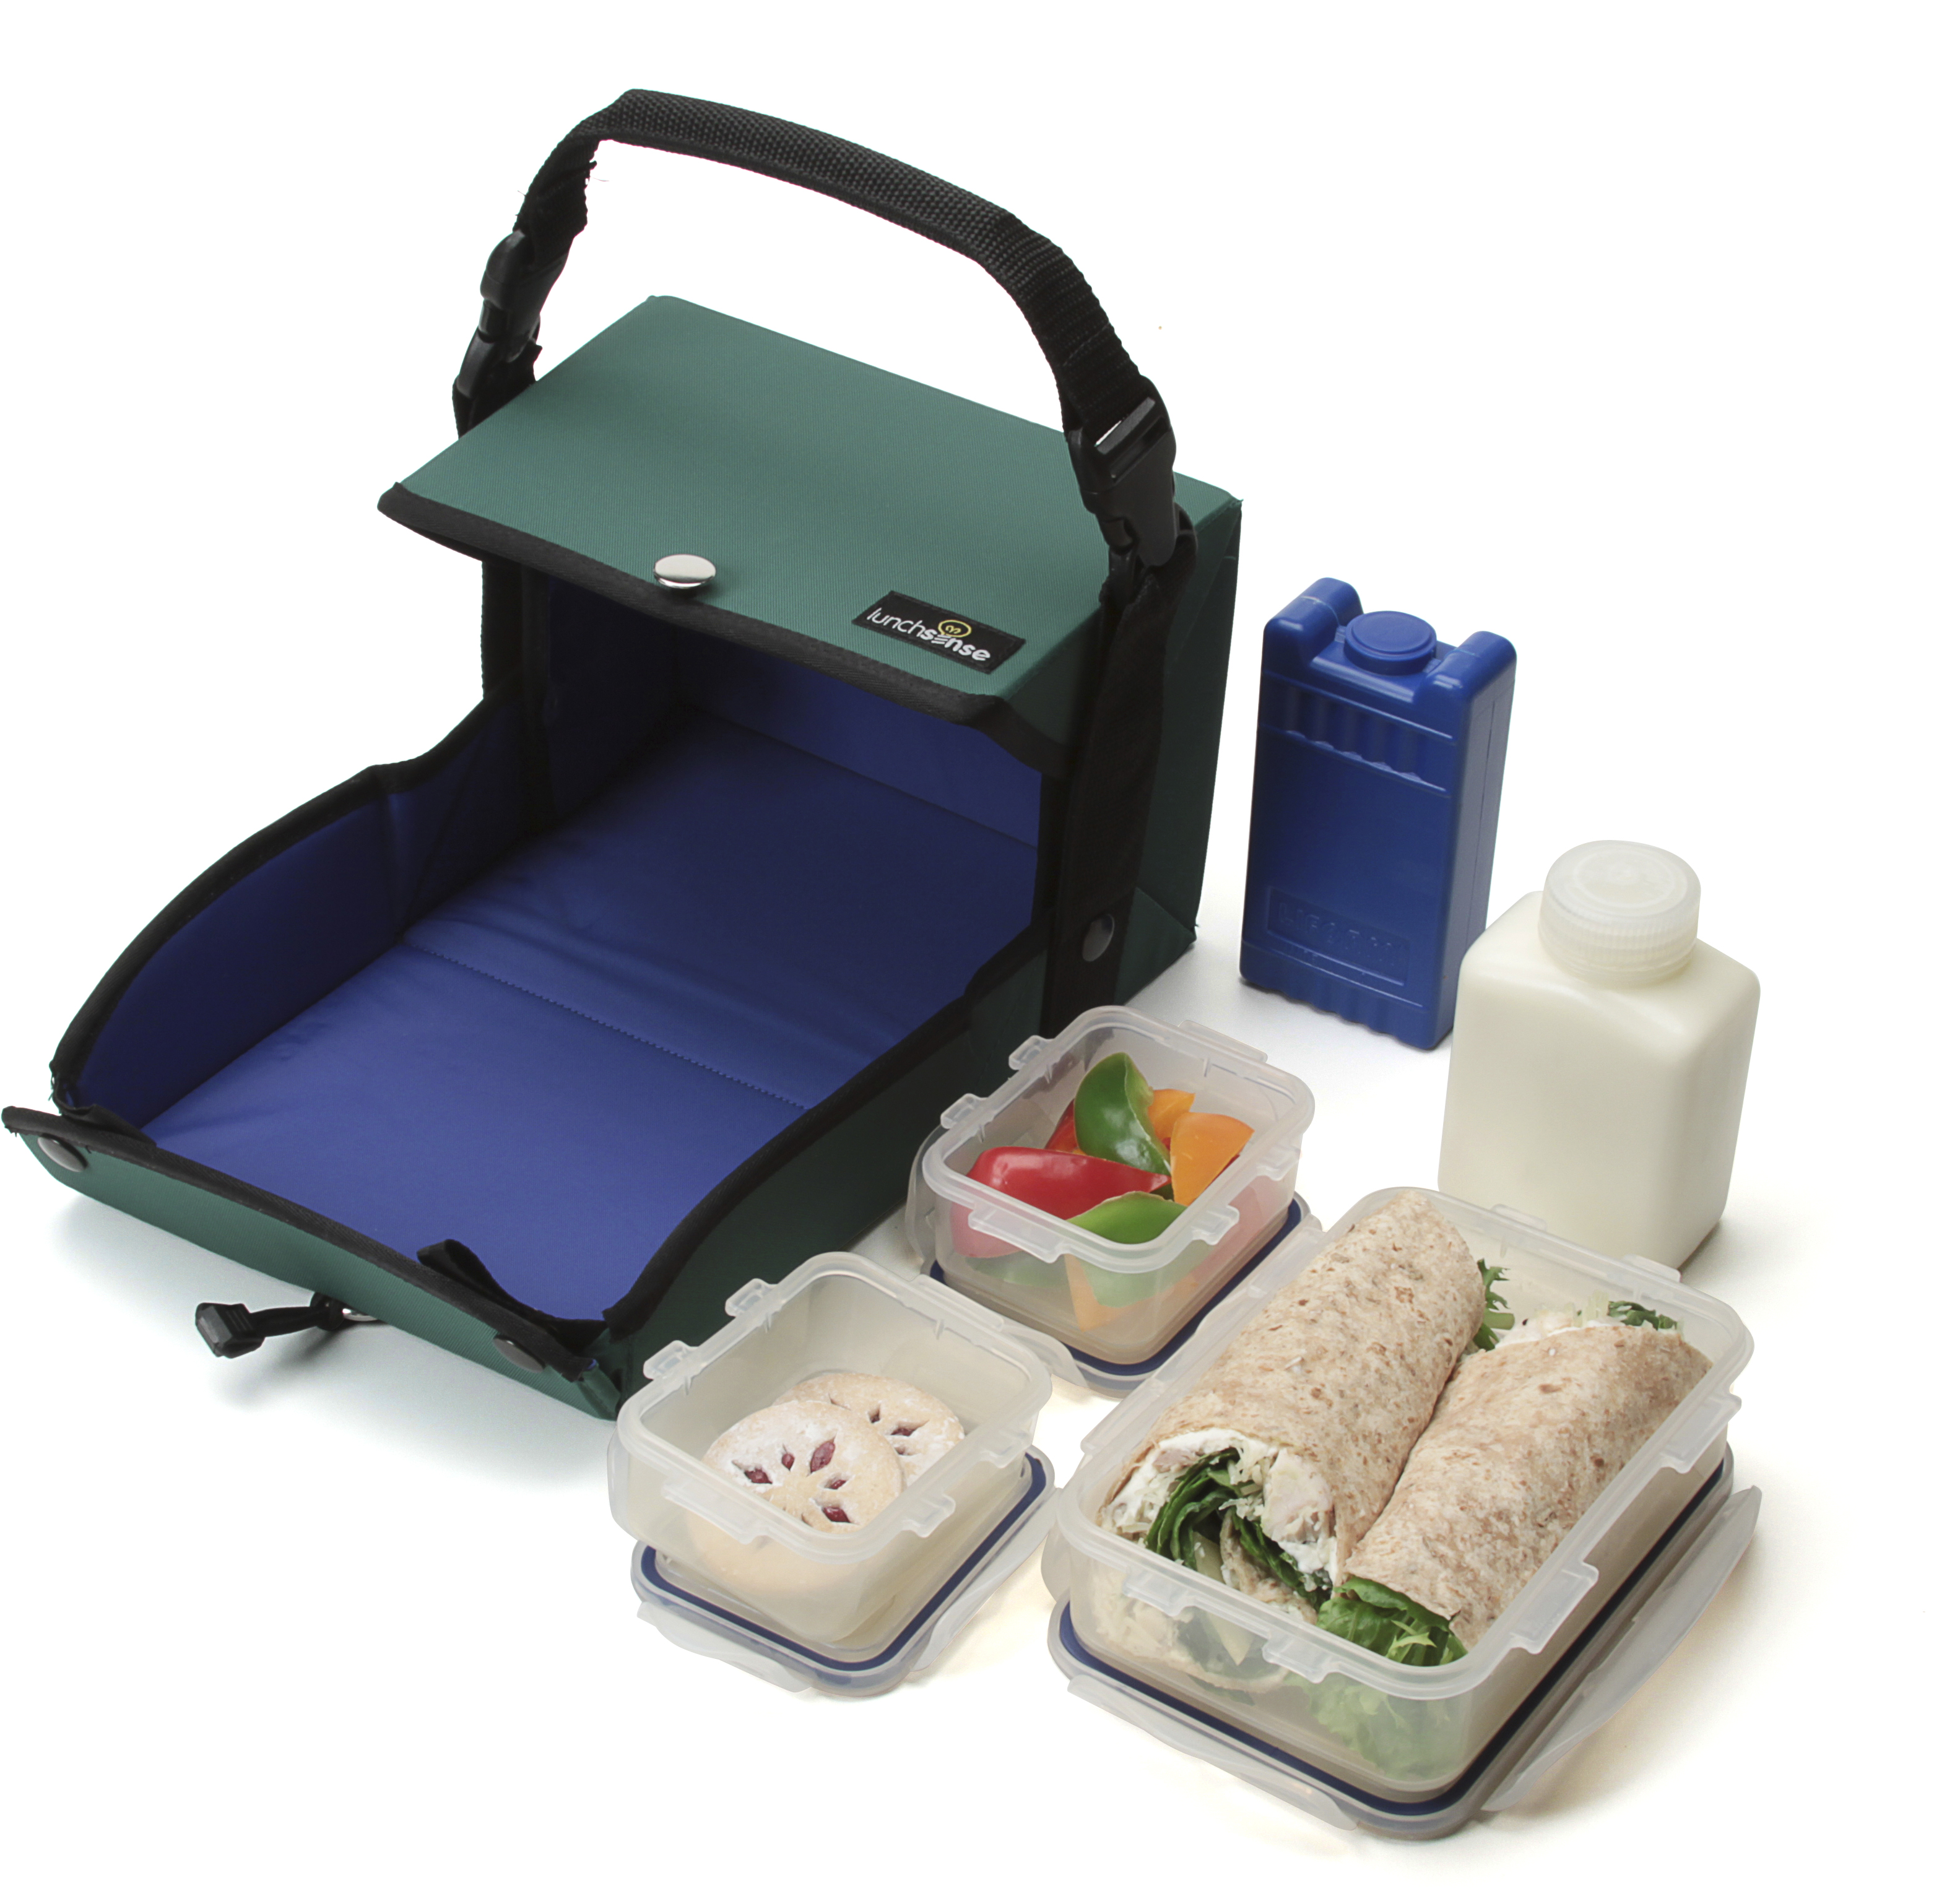 LunchSense Large Lunch Box W/ Food Storage Container Sets - Forest at Sears.com